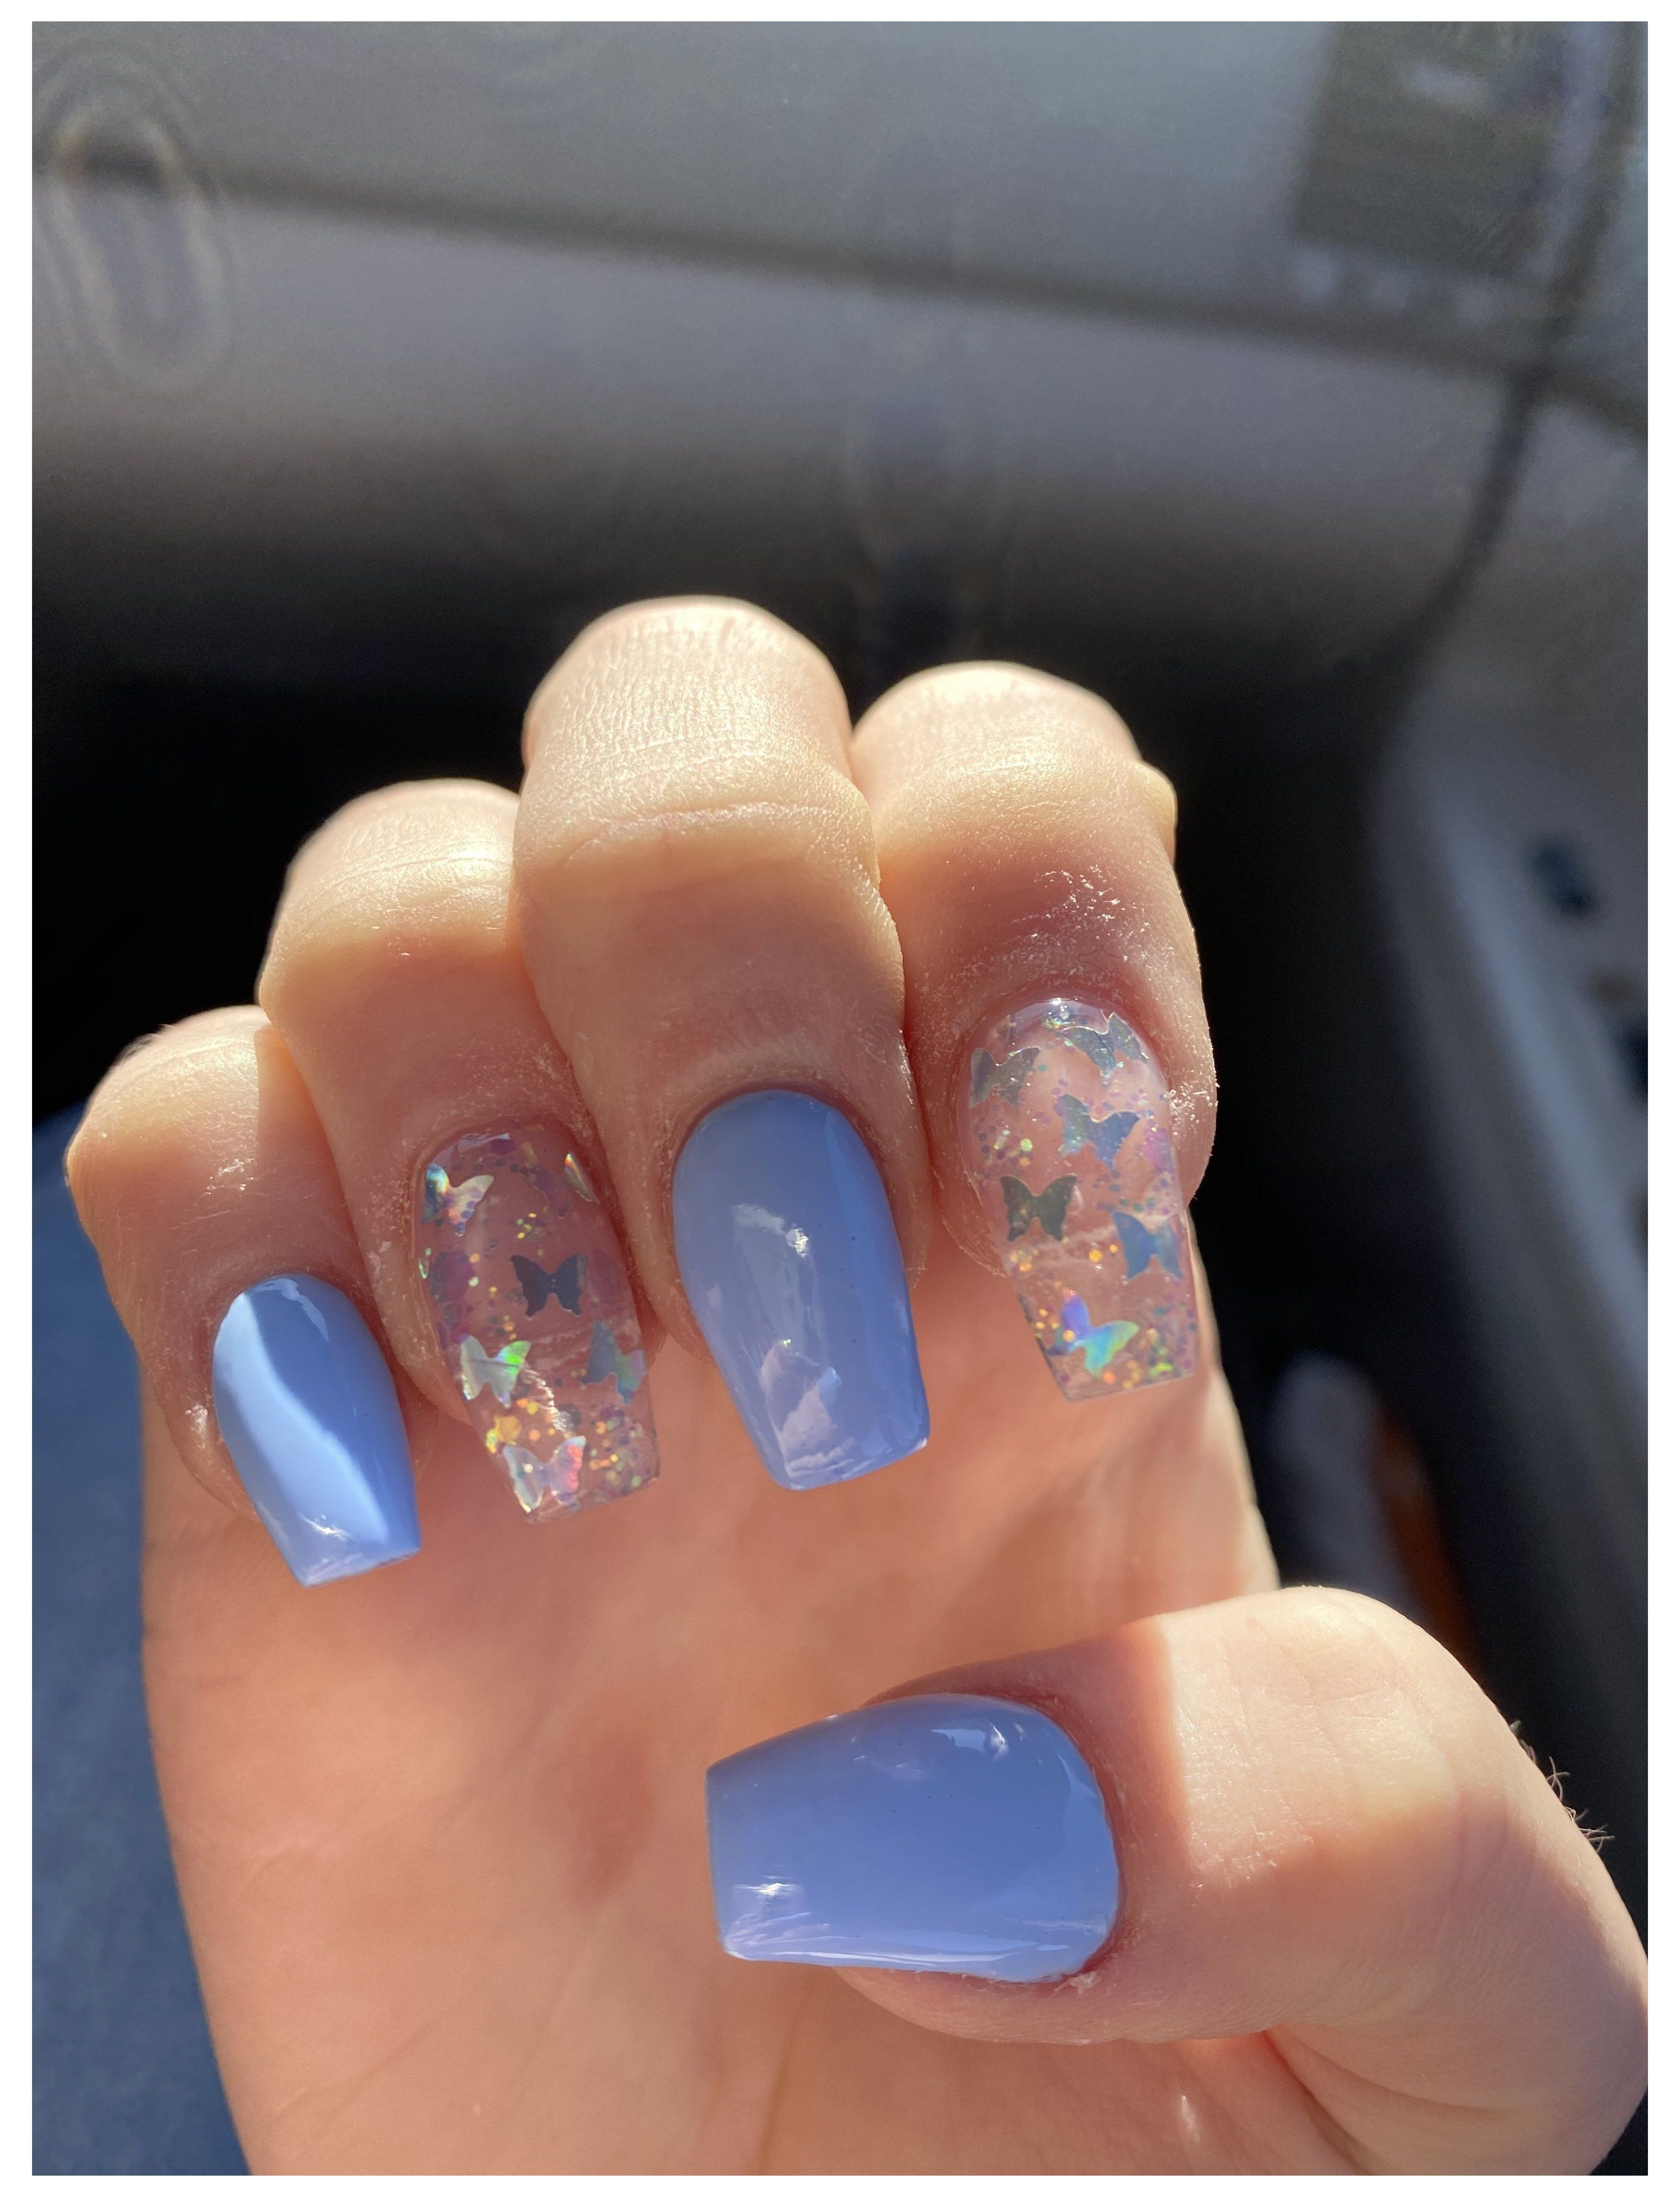 Blue Butterfly Nails Short Acrylic Nails Square Butterfly Blue Butterfly Nails In 2020 Blue Glitter Nails Pink Acrylic Nails Short Acrylic Nails Designs